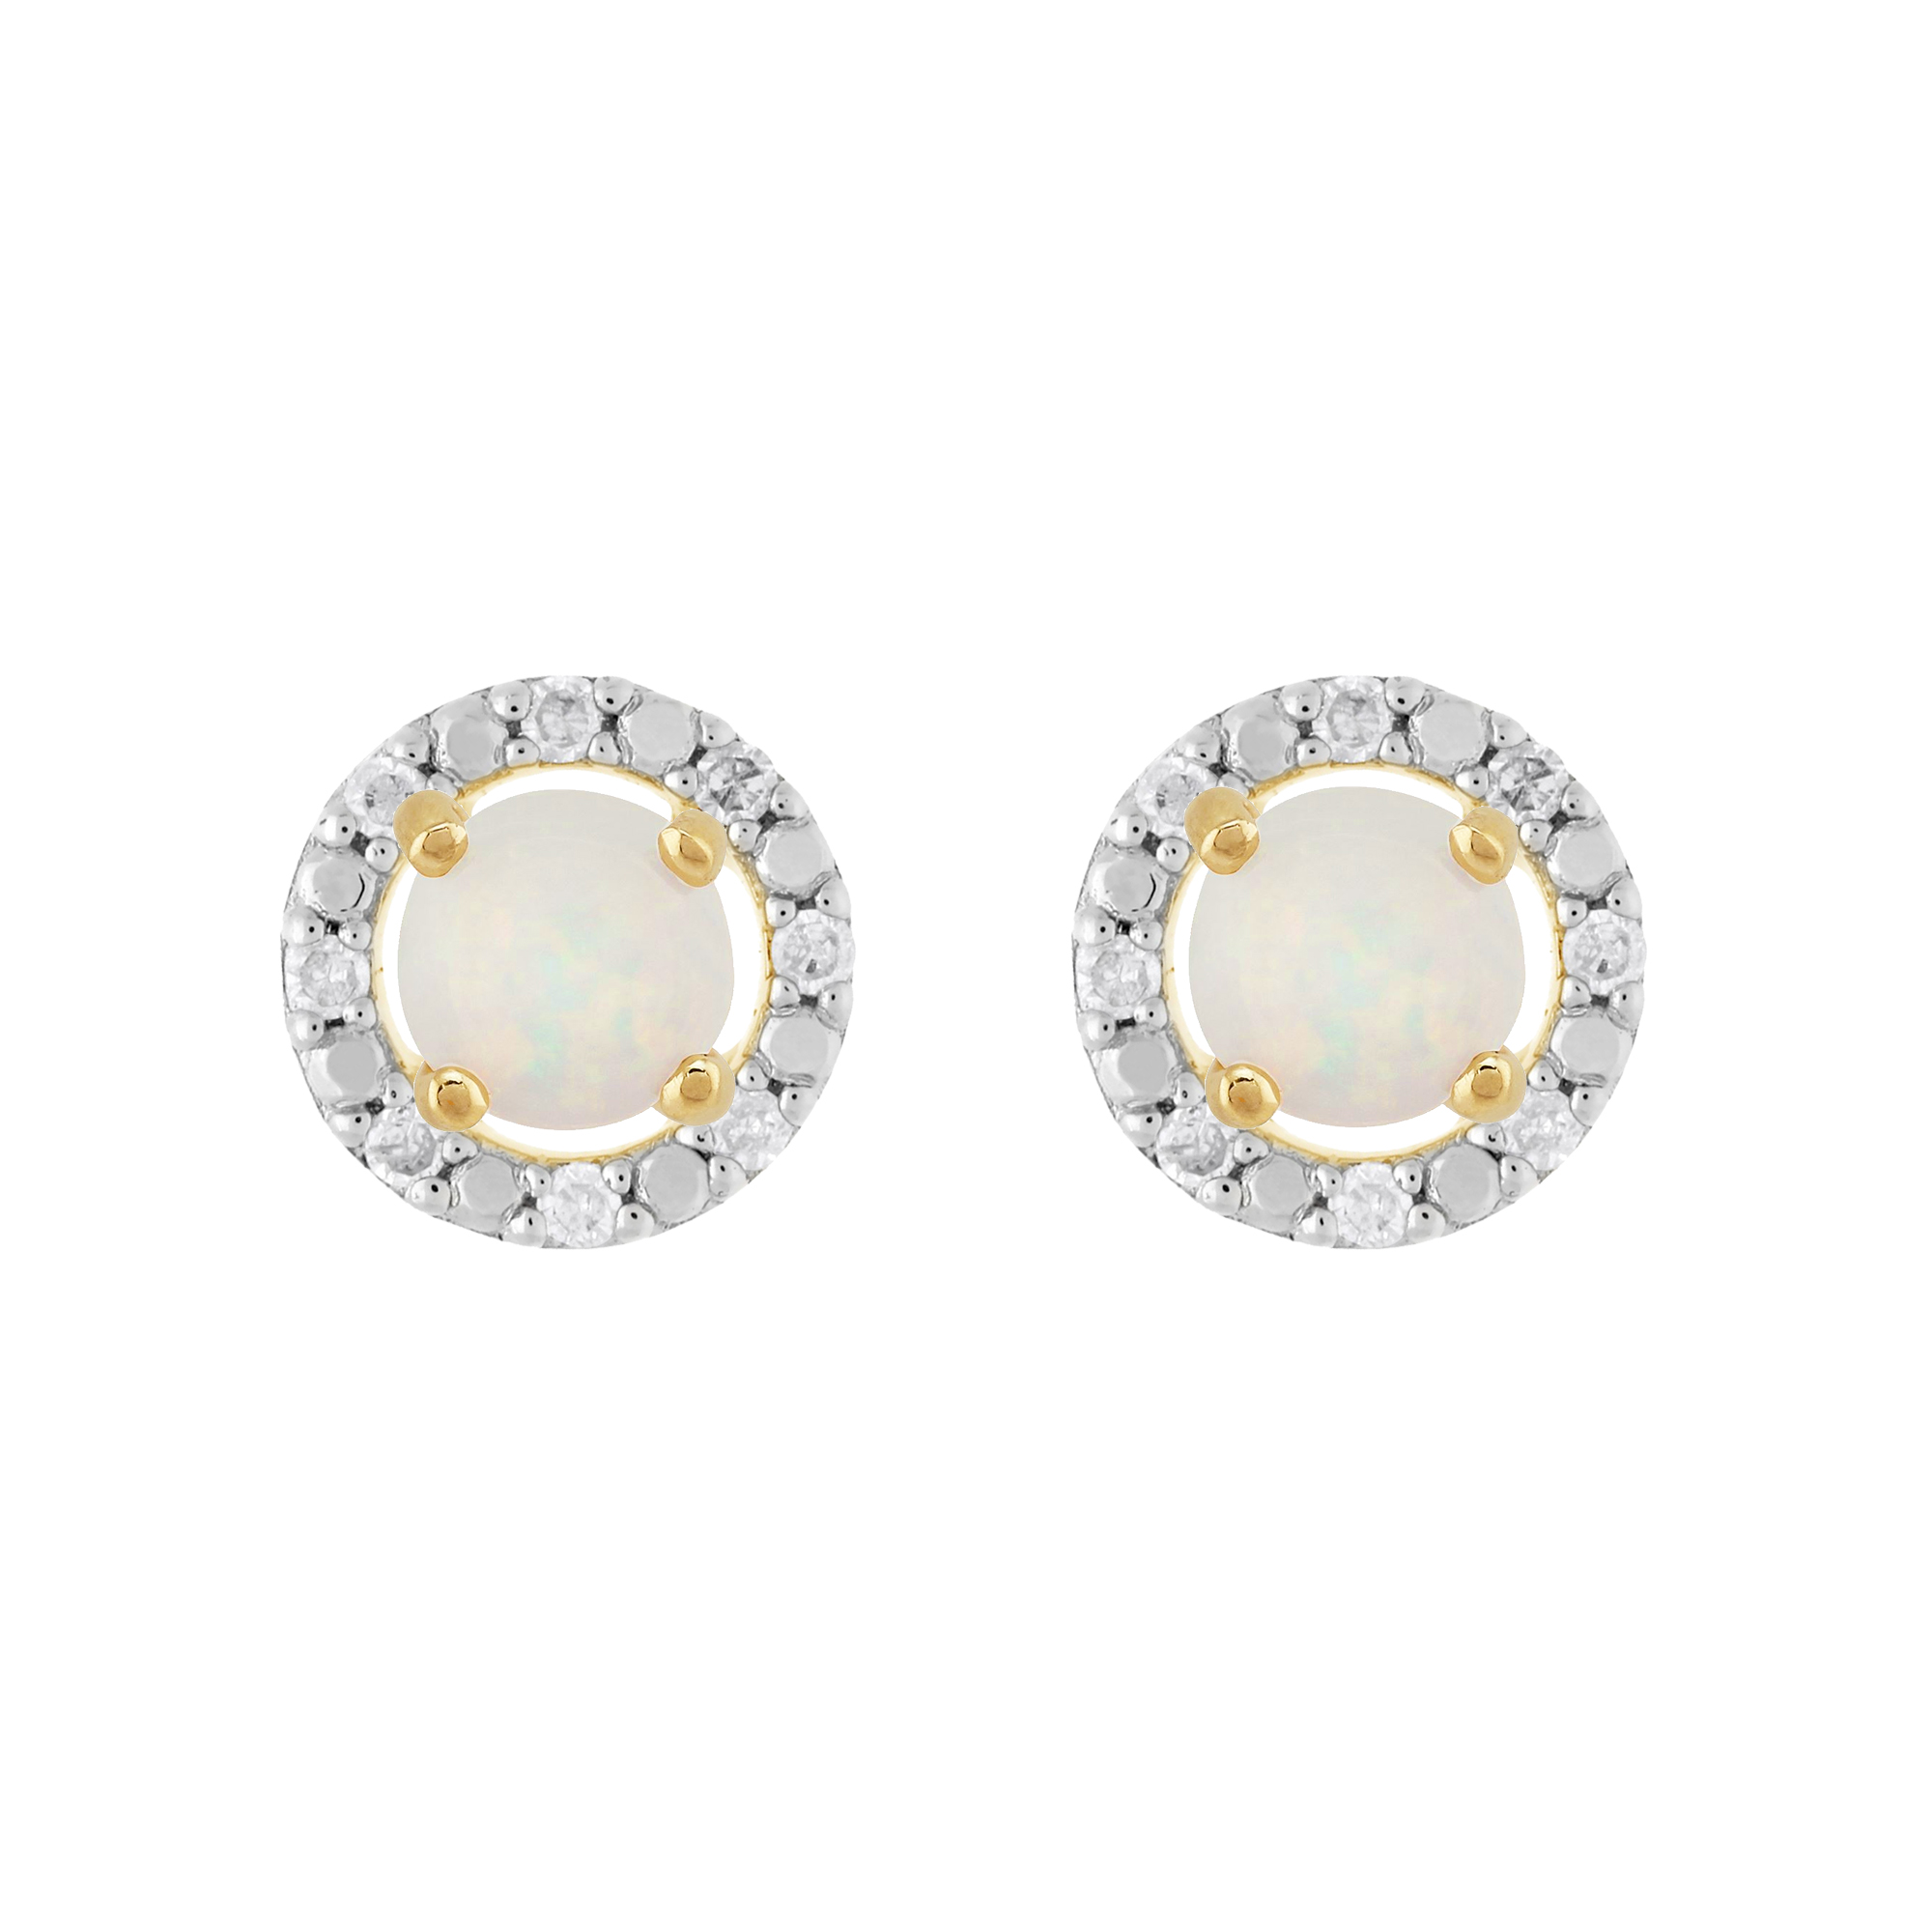 ee6a9be28 Details about 9ct Yellow Gold Opal Stud Earrings & Detachable Diamond Round  Ear Jacket